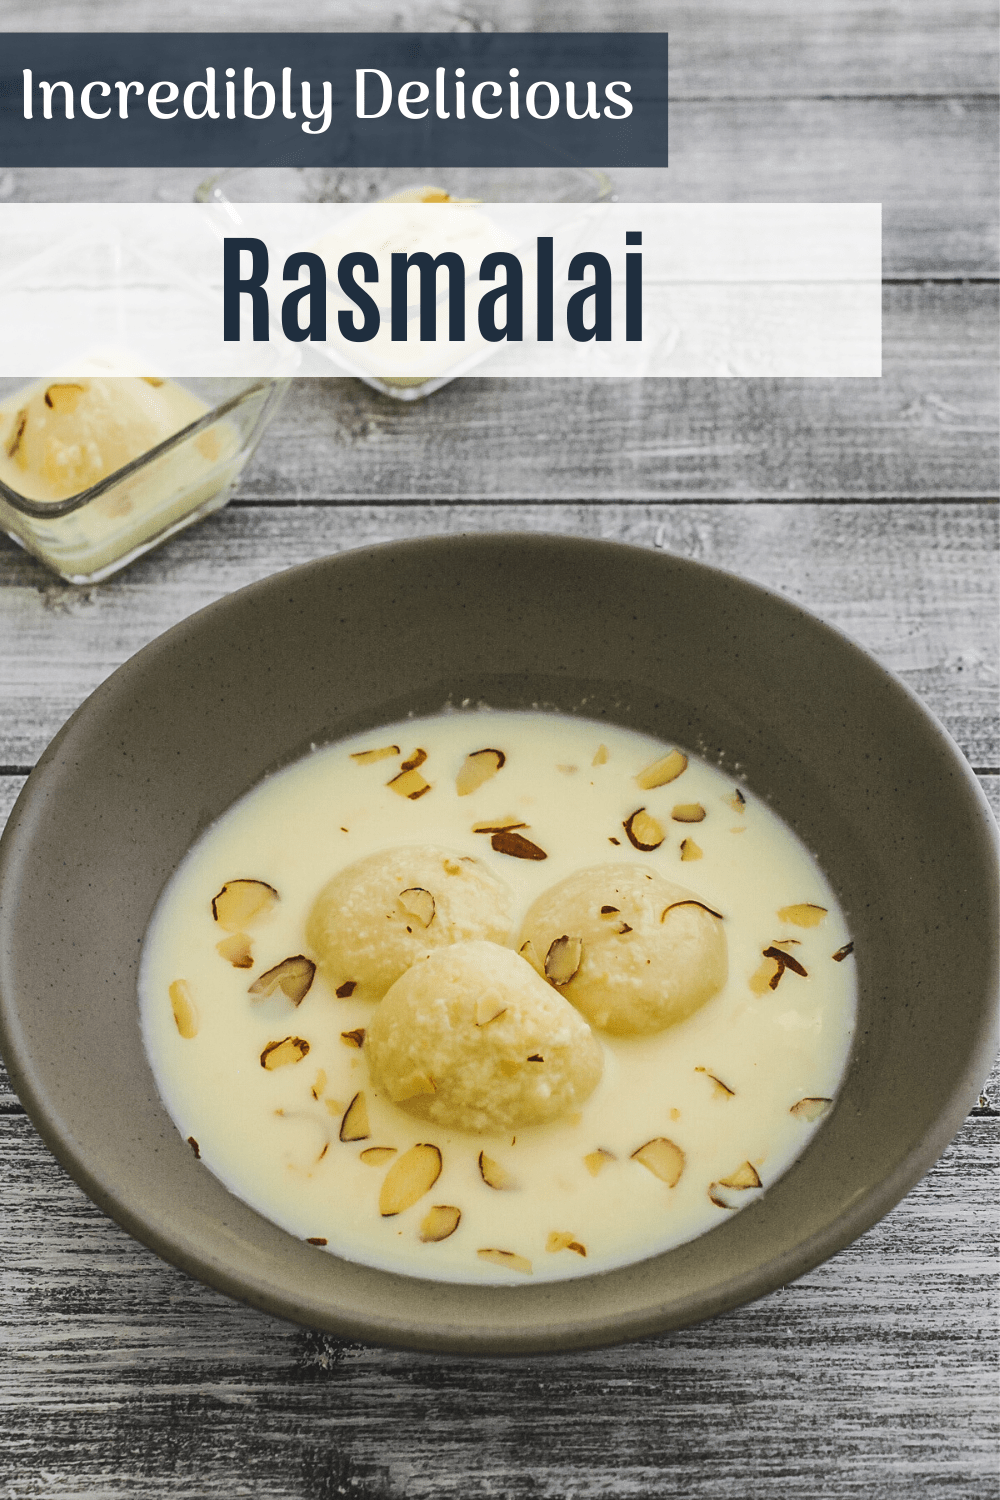 3 rasmalai in a bowl garnished with almonds with text on top of image for pinterest